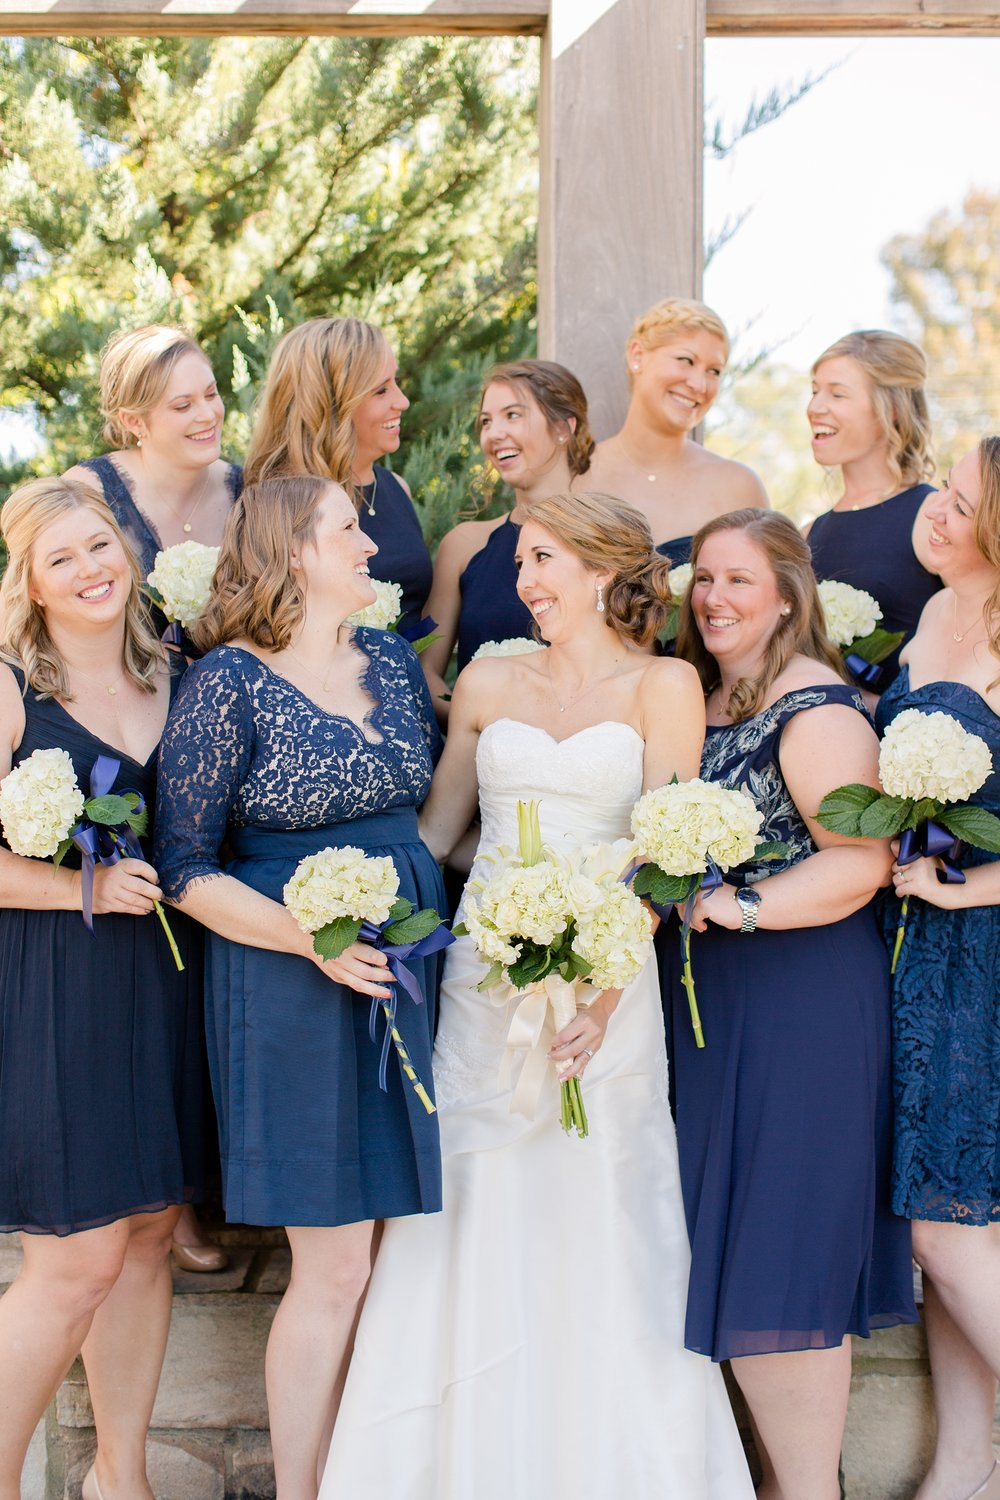 Diers 4-Bridal Party-665_anna grace photography charlotte north carolina wedding photographer photo.jpg